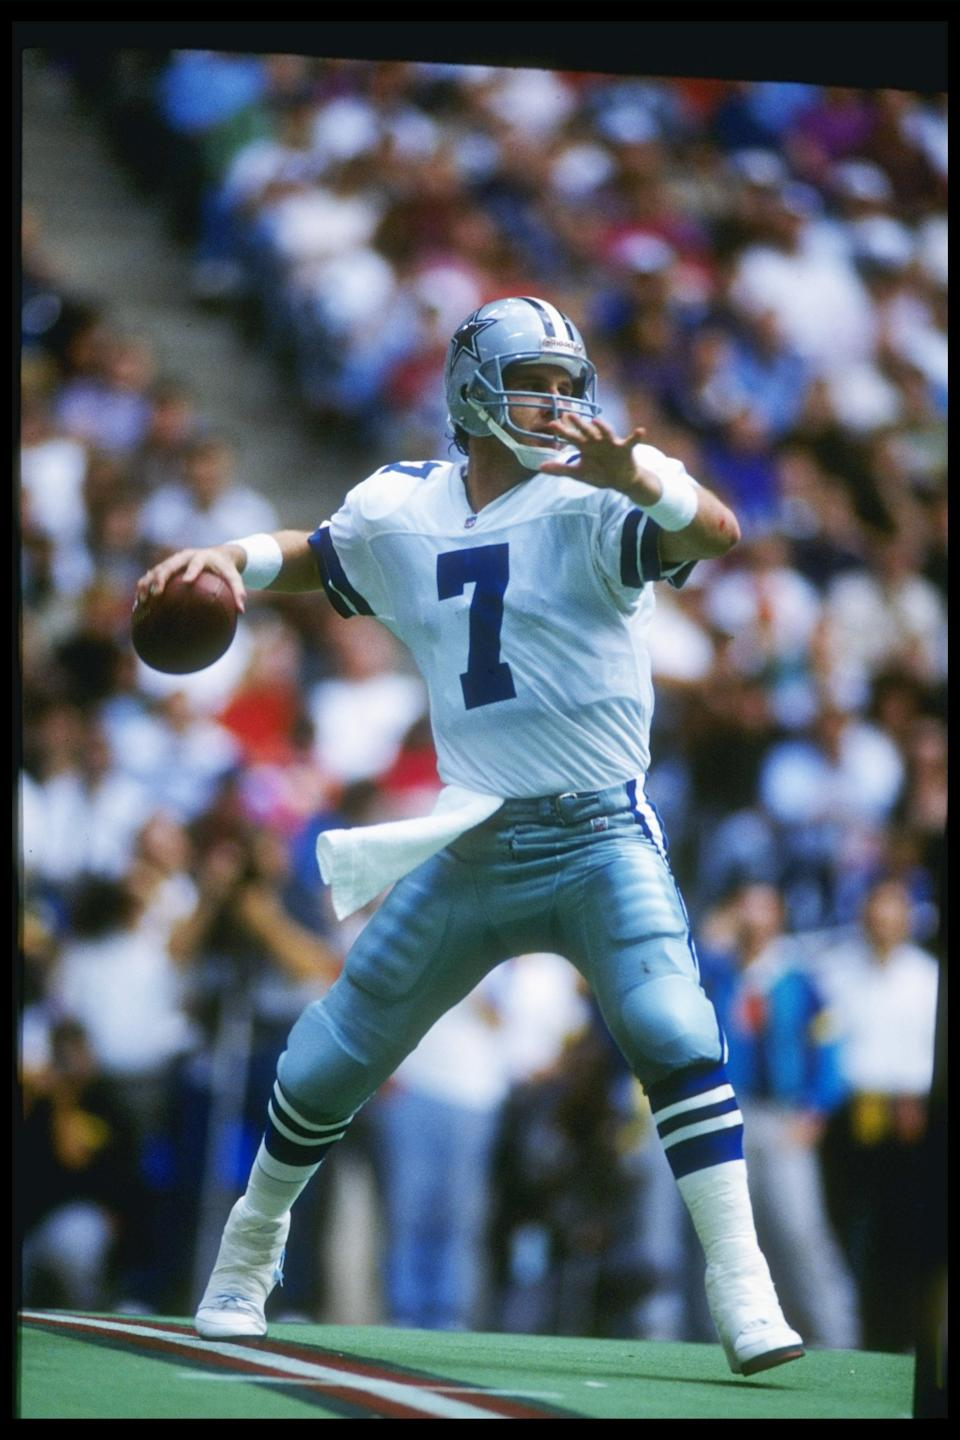 Steve Beuerlein had a solid 14-season NFL career, but in our alternate universe he goes onto bigger stardom. (Photo by Joe Patronite/Allsport)